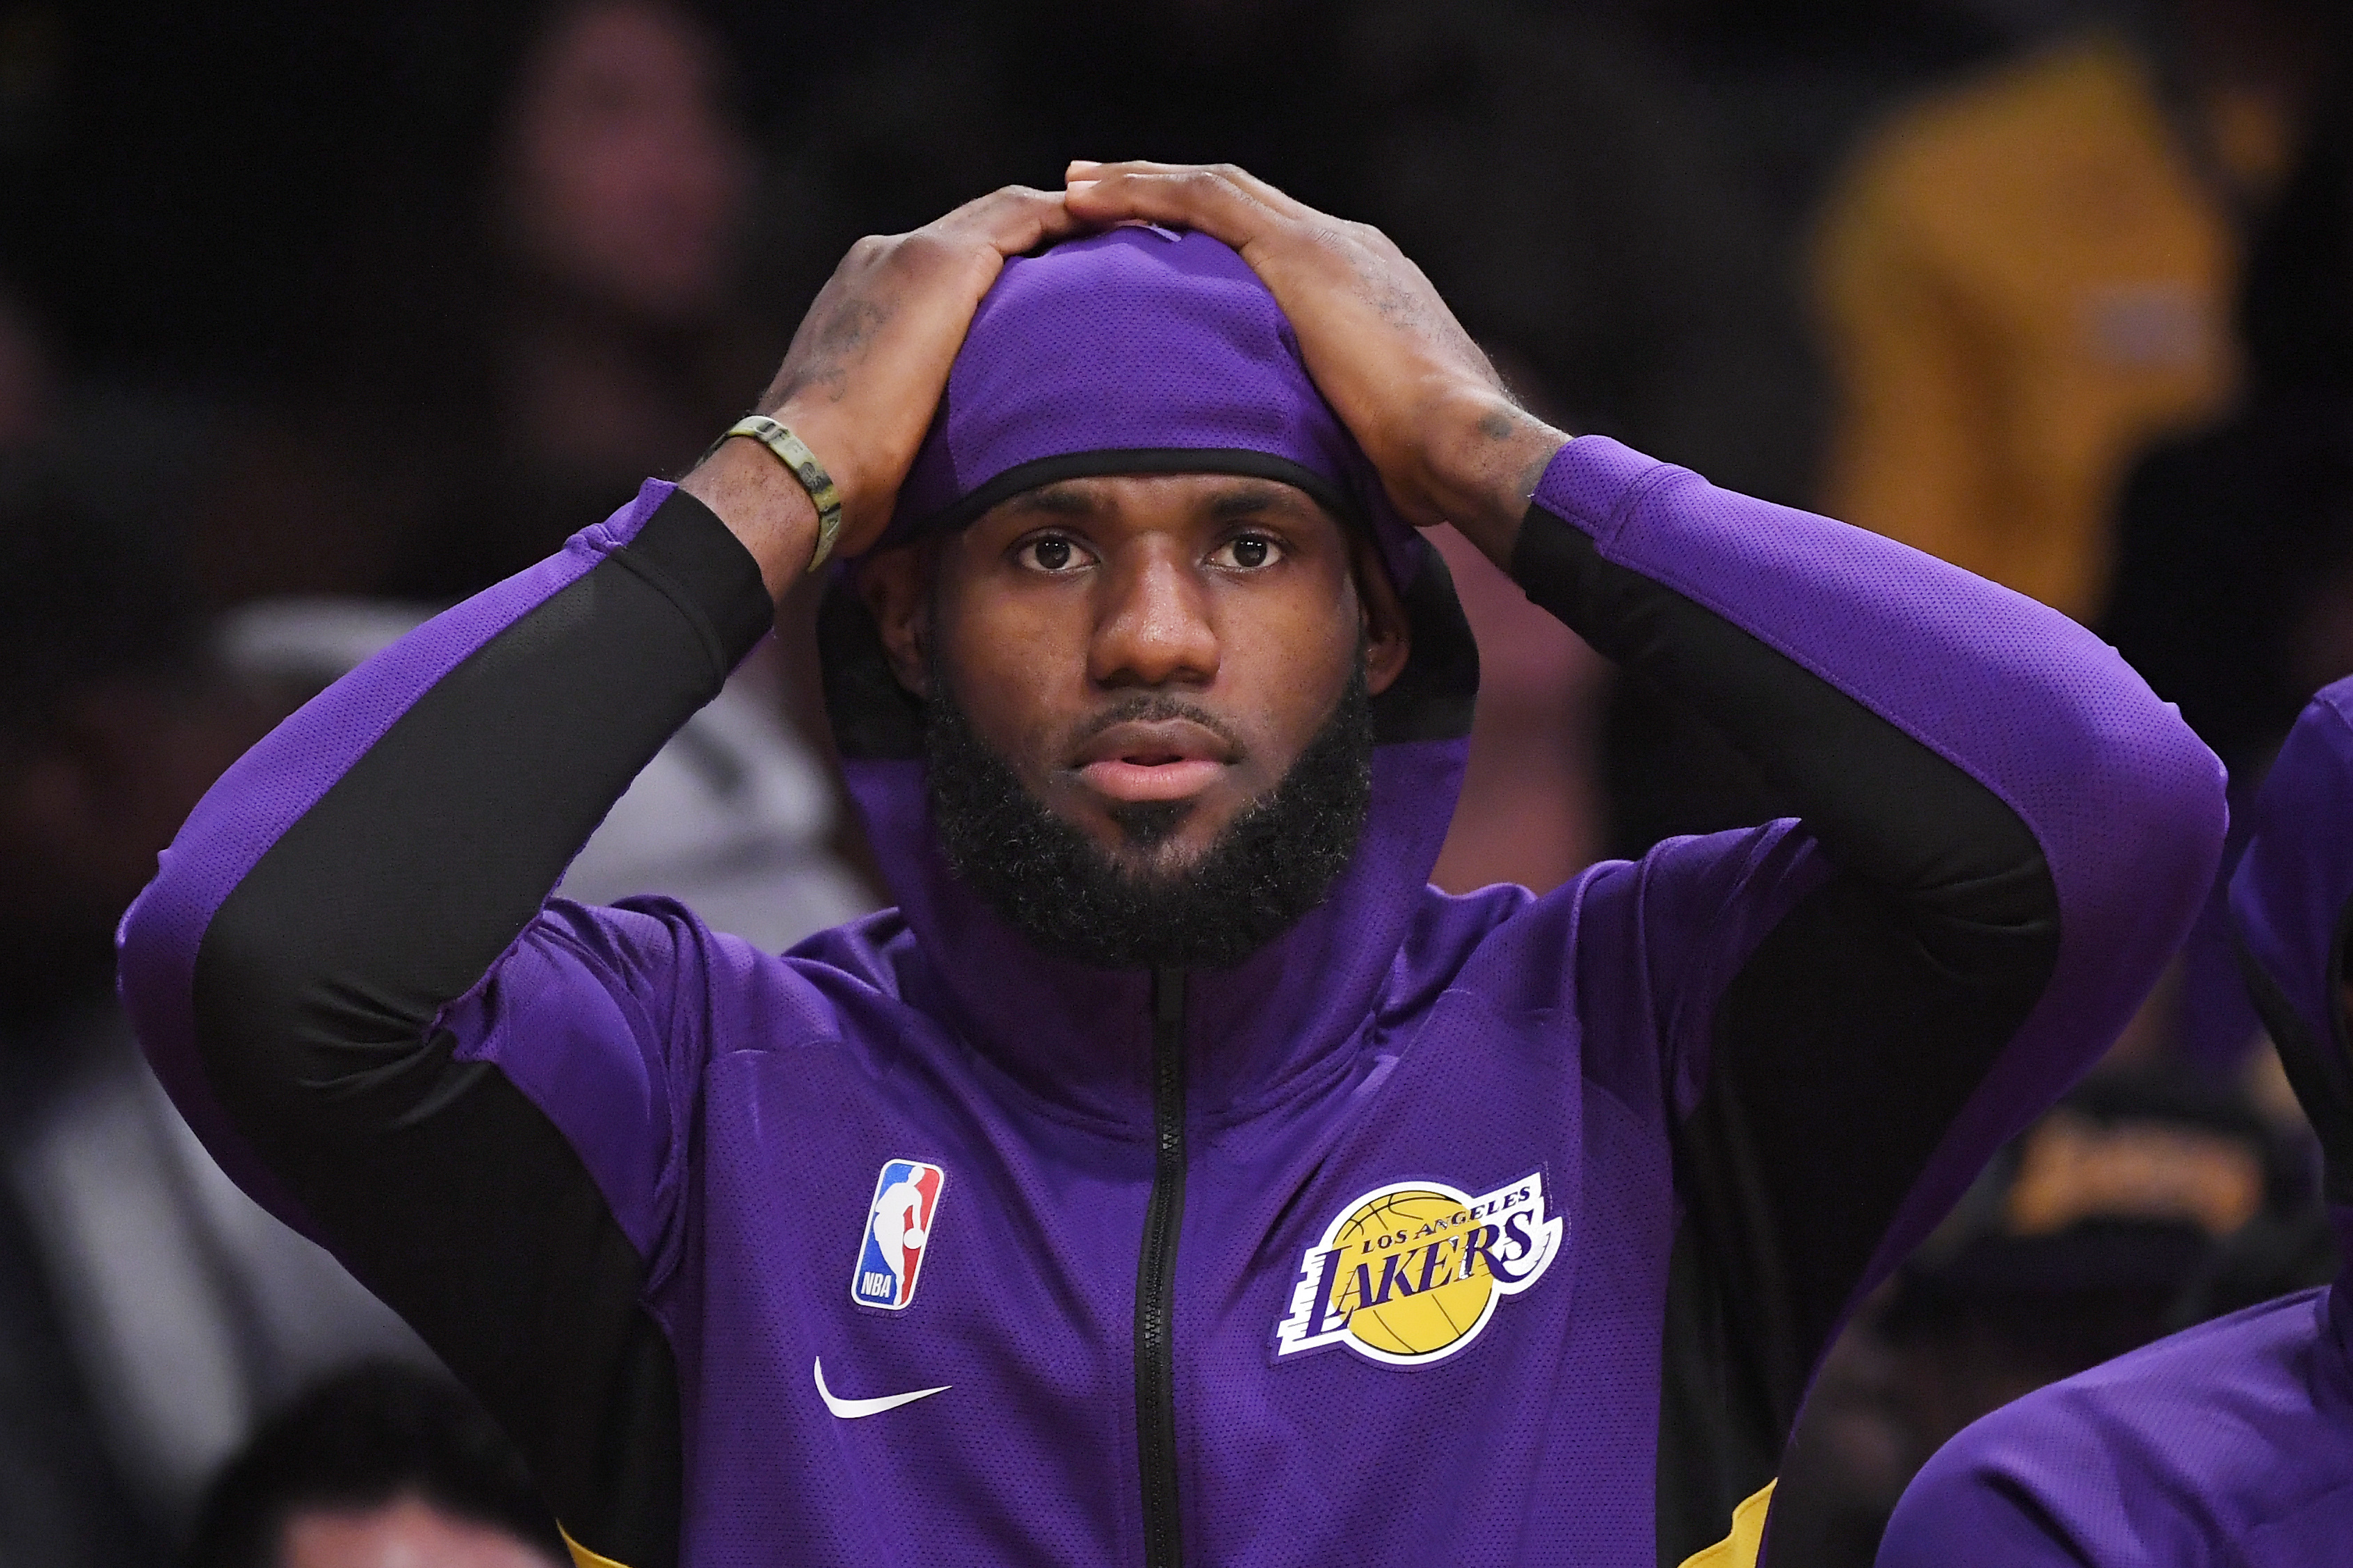 Los Angeles Lakers forward LeBron James sits on the bench during the first half of a preseason NBA basketball game against the Golden State Warriors, Monday, Oct. 14, 2019, in Los Angeles. (AP Photo/Mark J. Terrill)